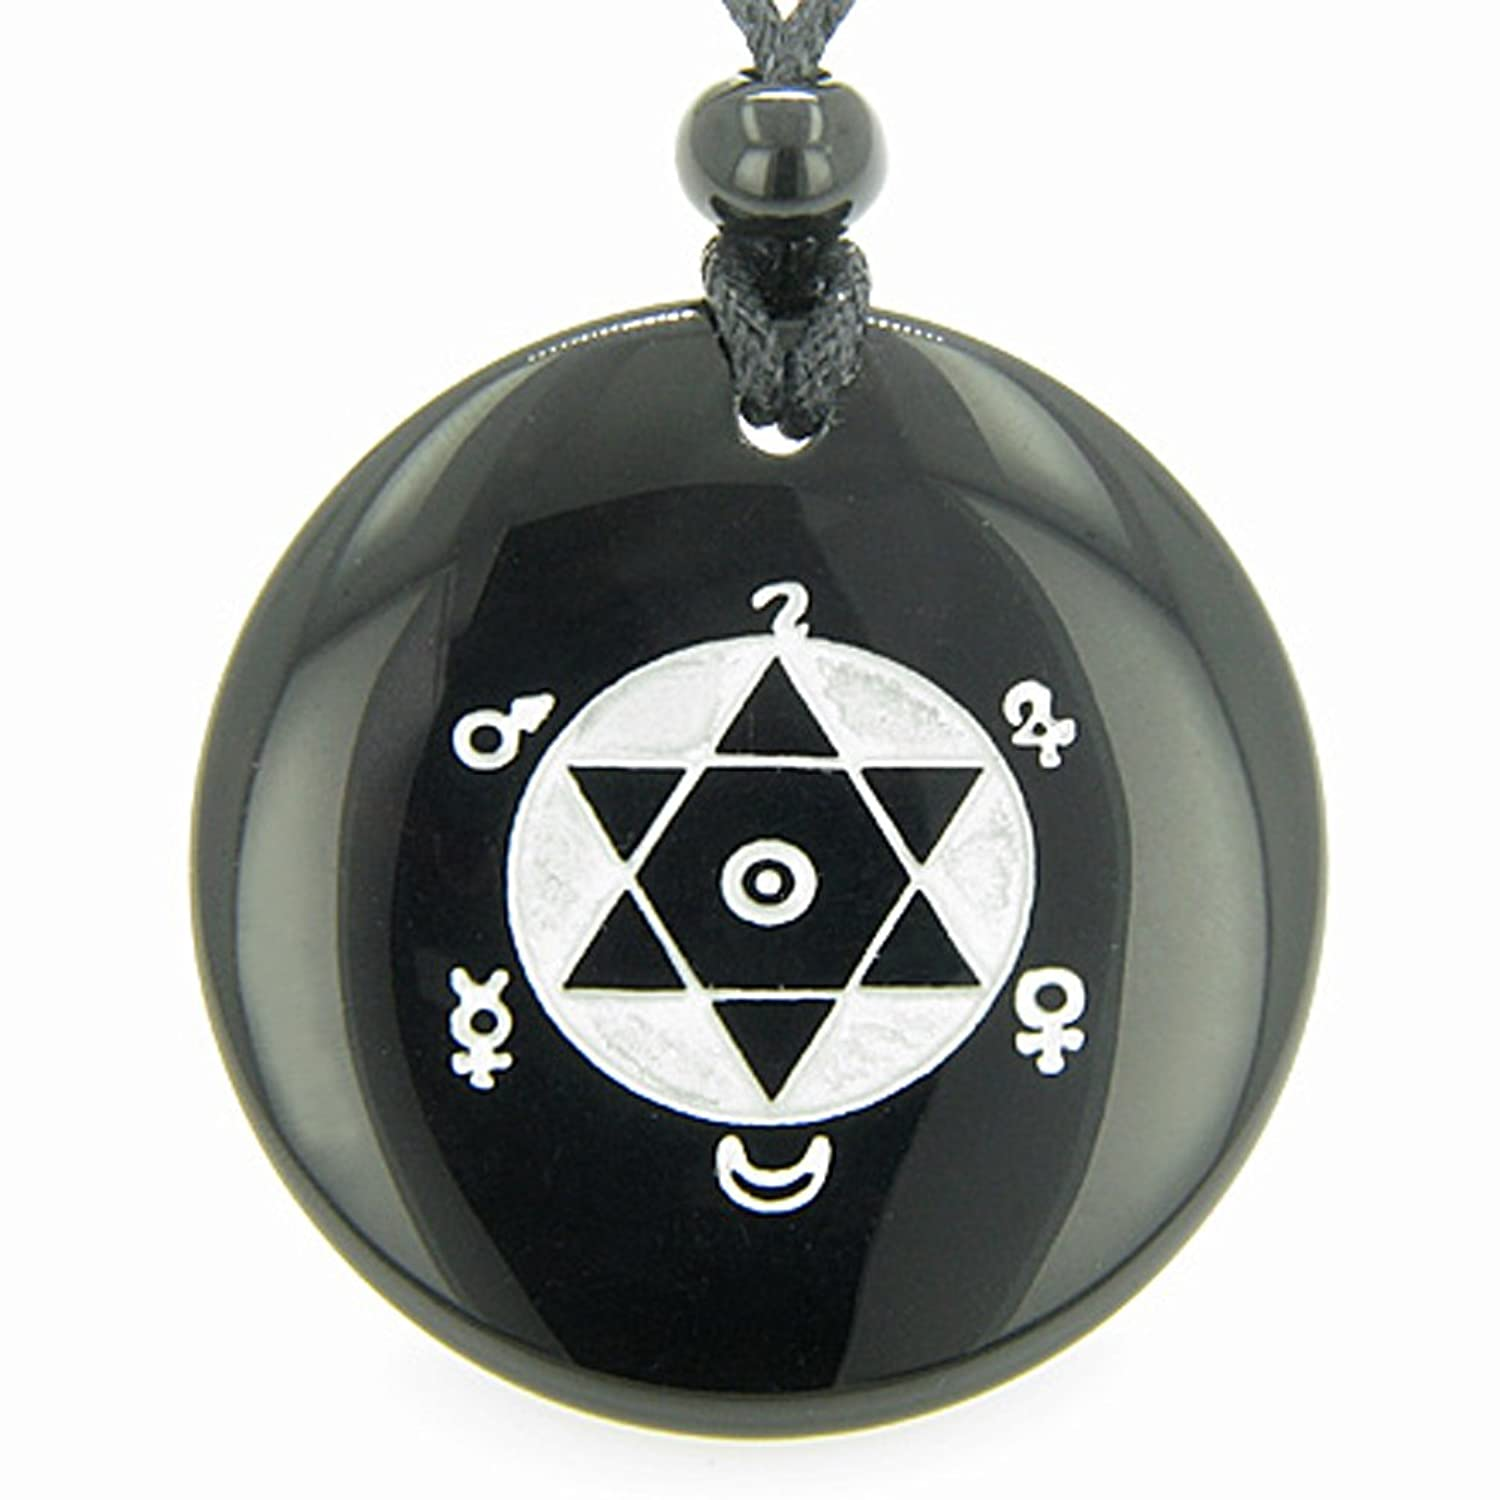 King solomon seal of success amulet black agate pendant necklace king solomon seal of success amulet black agate pendant necklace bestamulets amazon jewelry aloadofball Image collections